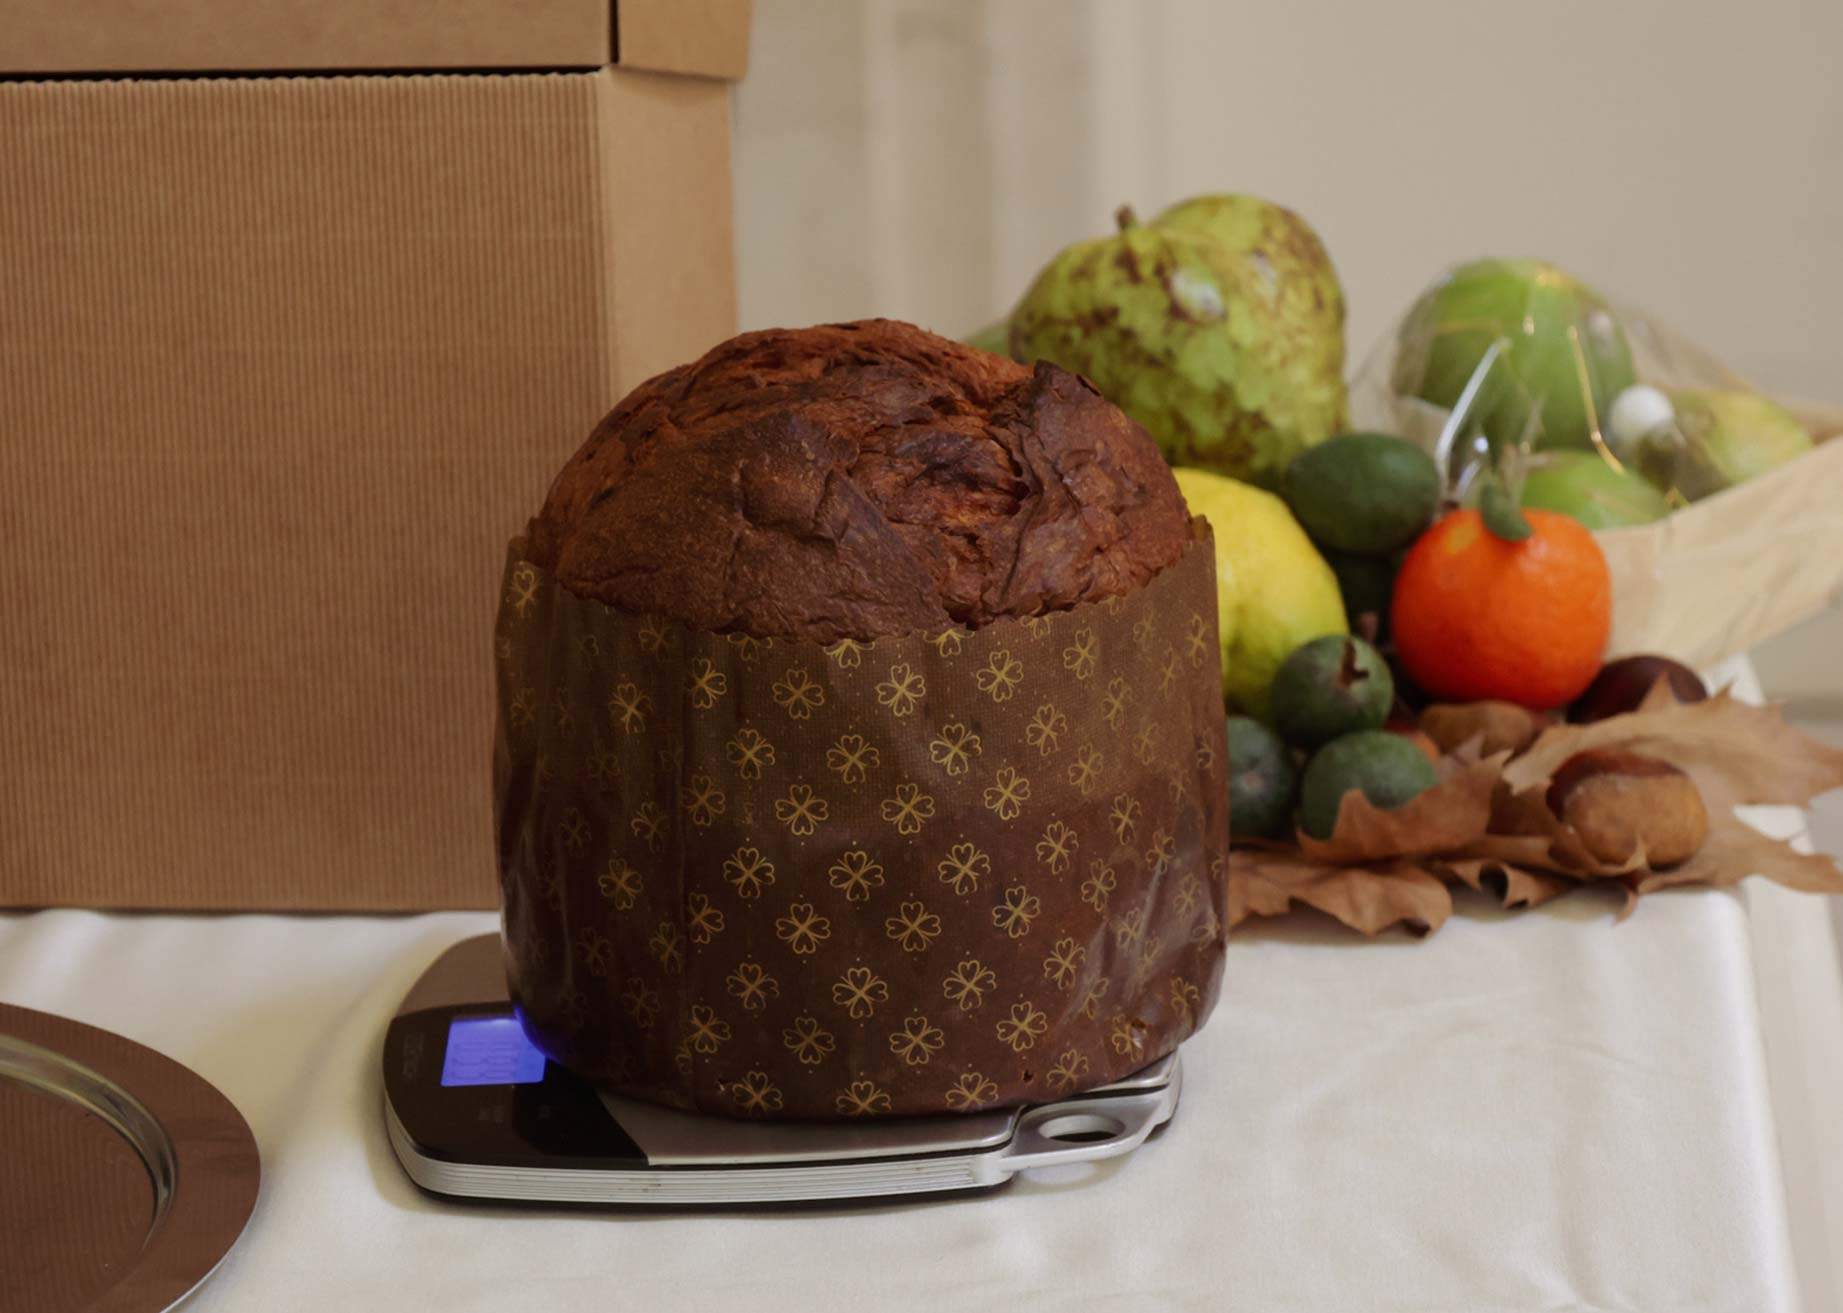 A Milanese Panettone at Panettone World Cup in Novacart baking mold